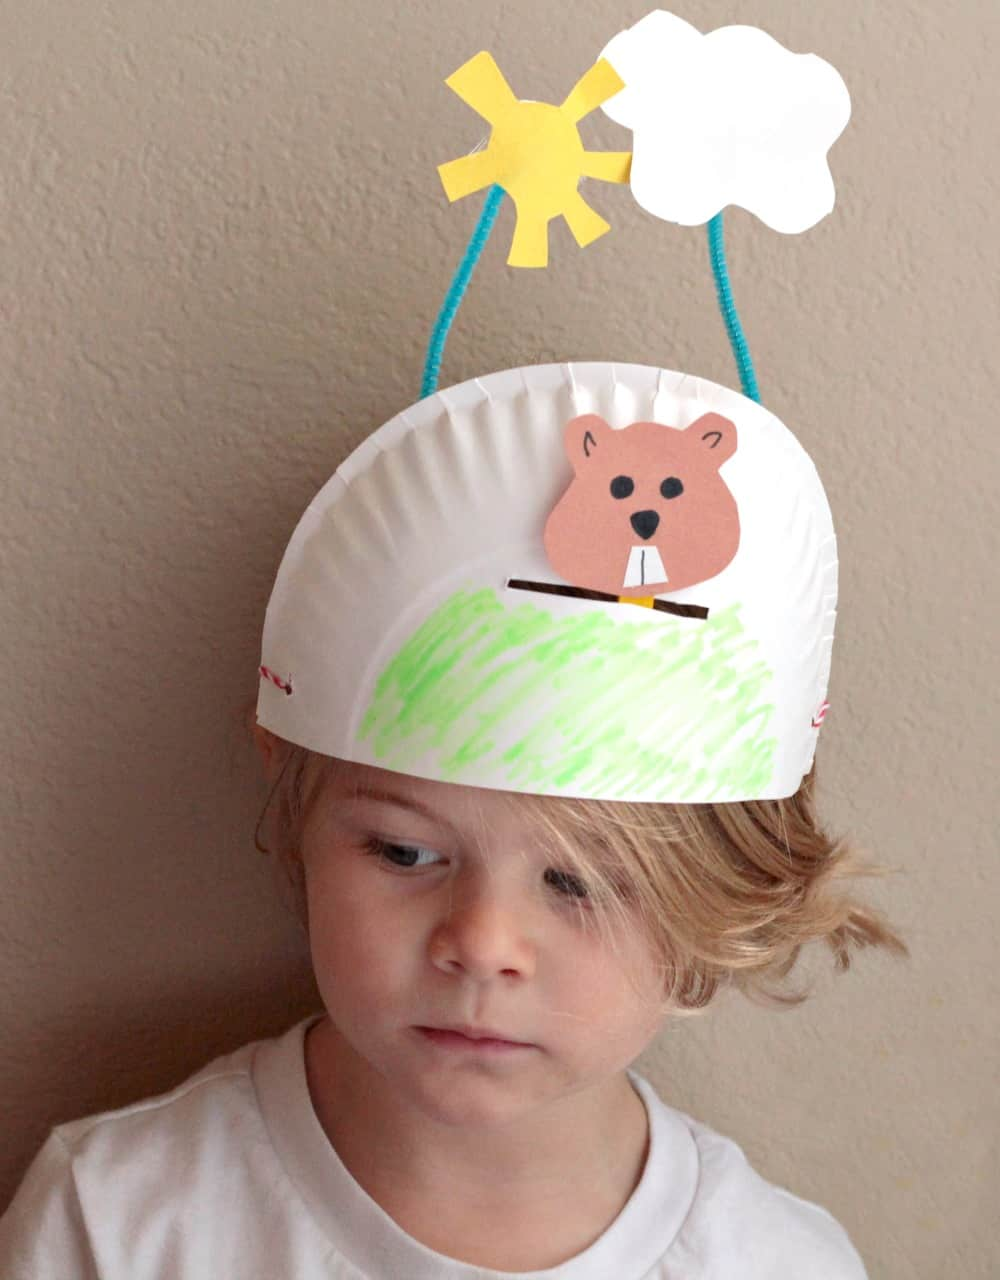 Such a cute groundhog day craft - an interactive hat for preschoolers!